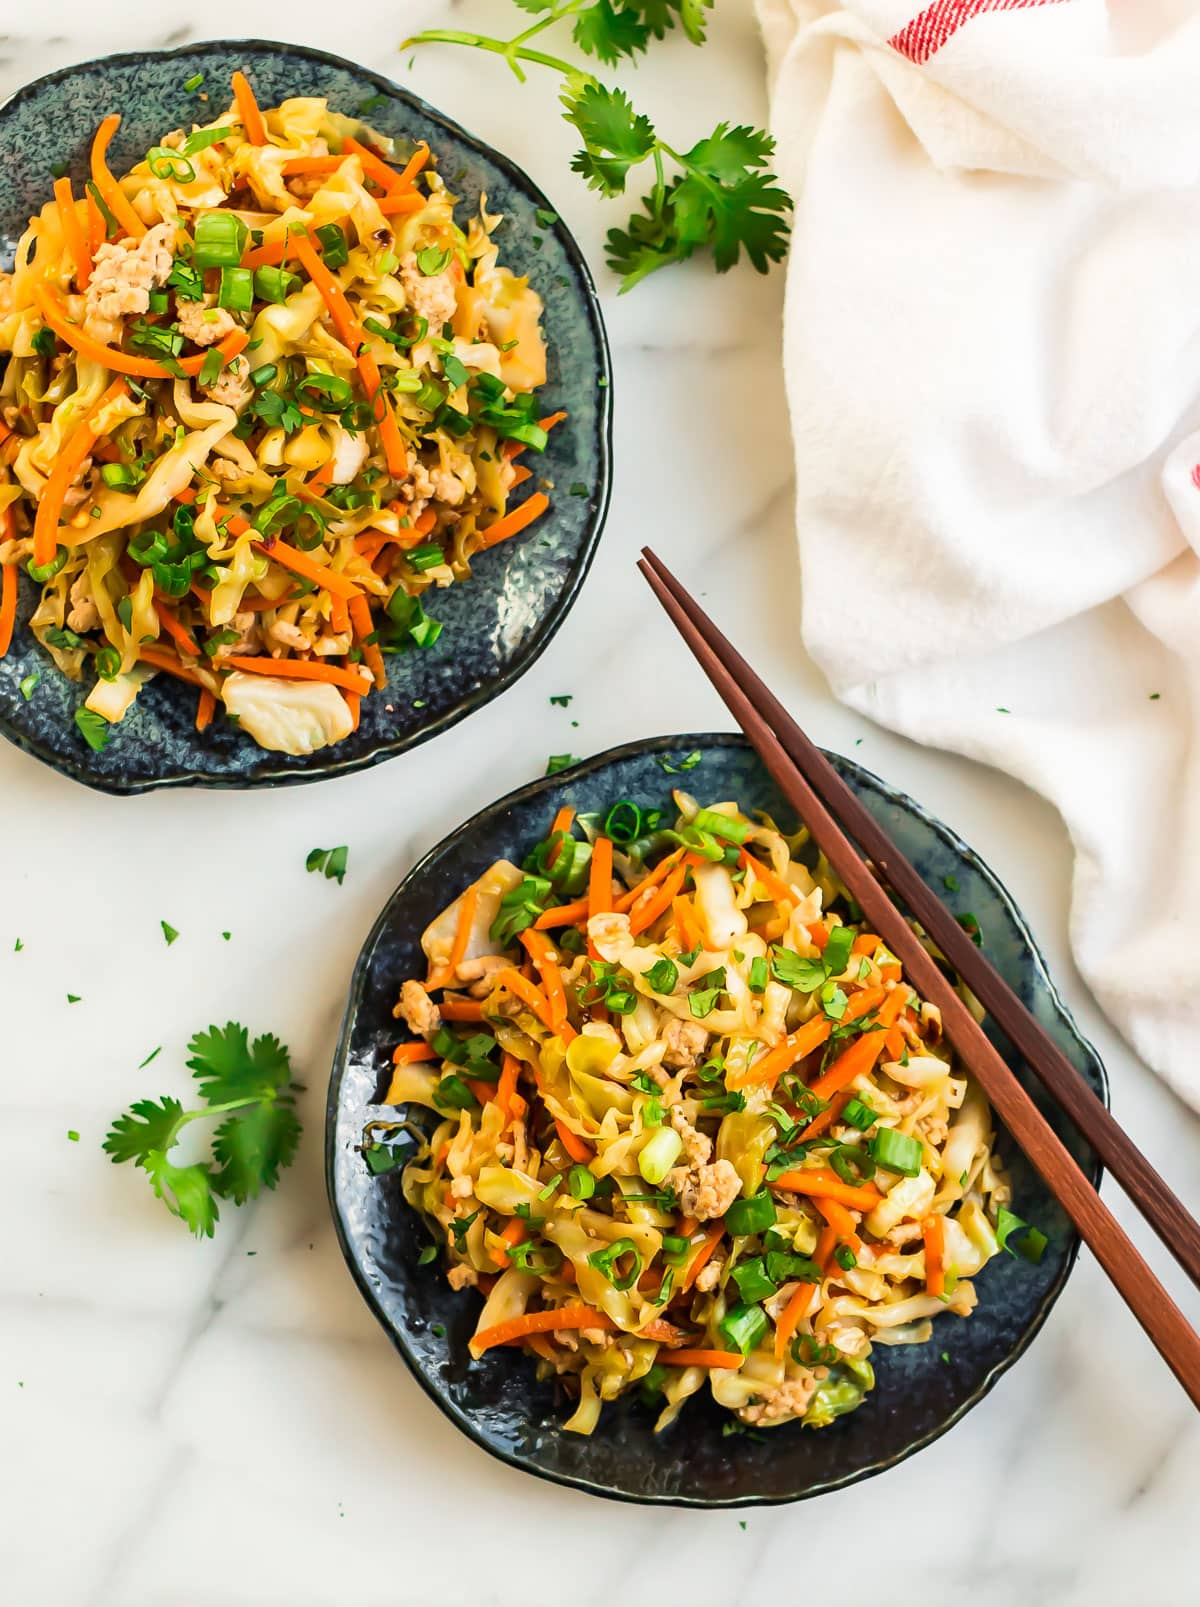 Two bowls of healthy cabbage stir fry